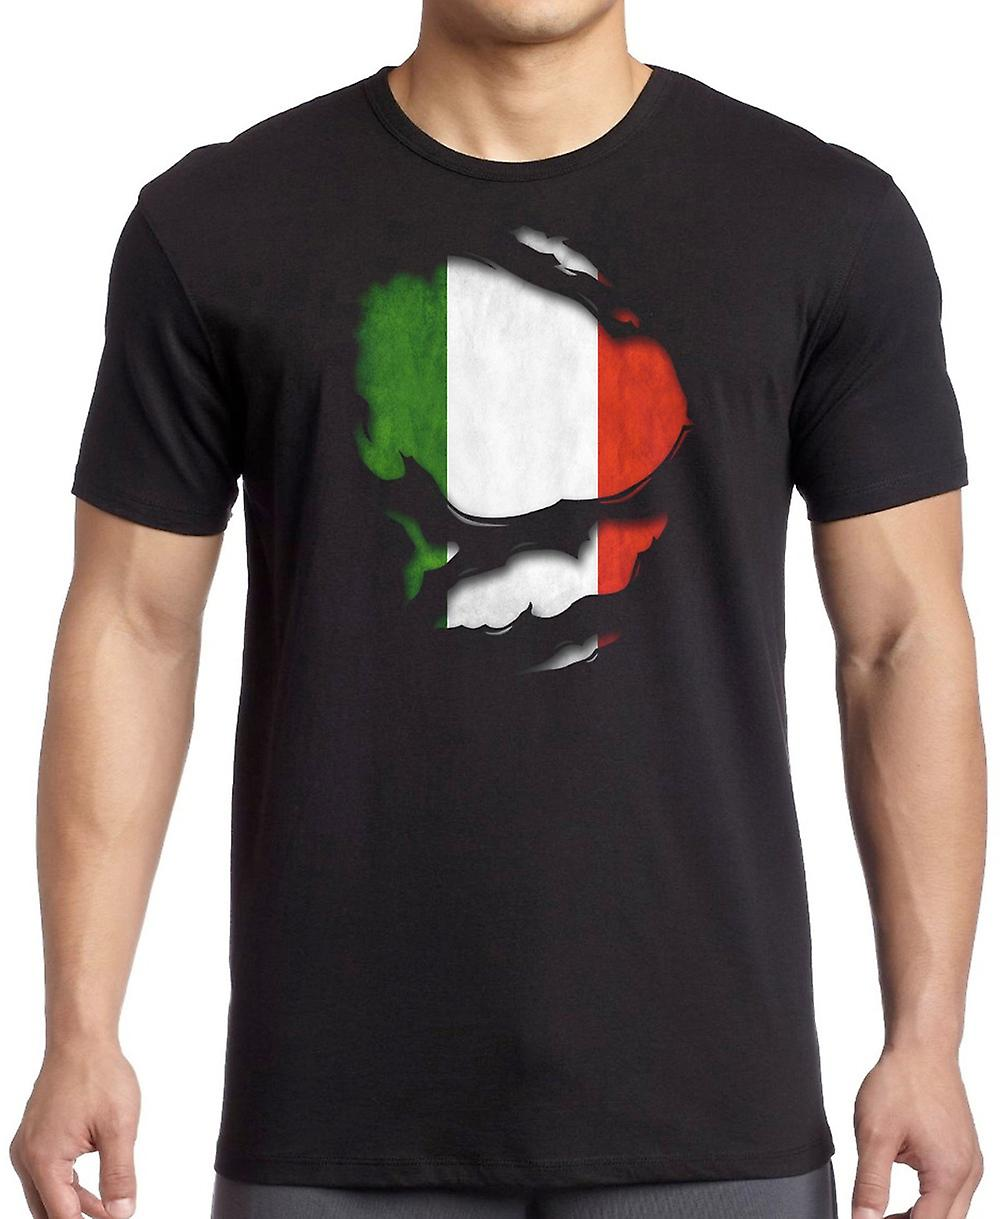 Italian Italy Ripped Effect Under Shirt Women T Shirt